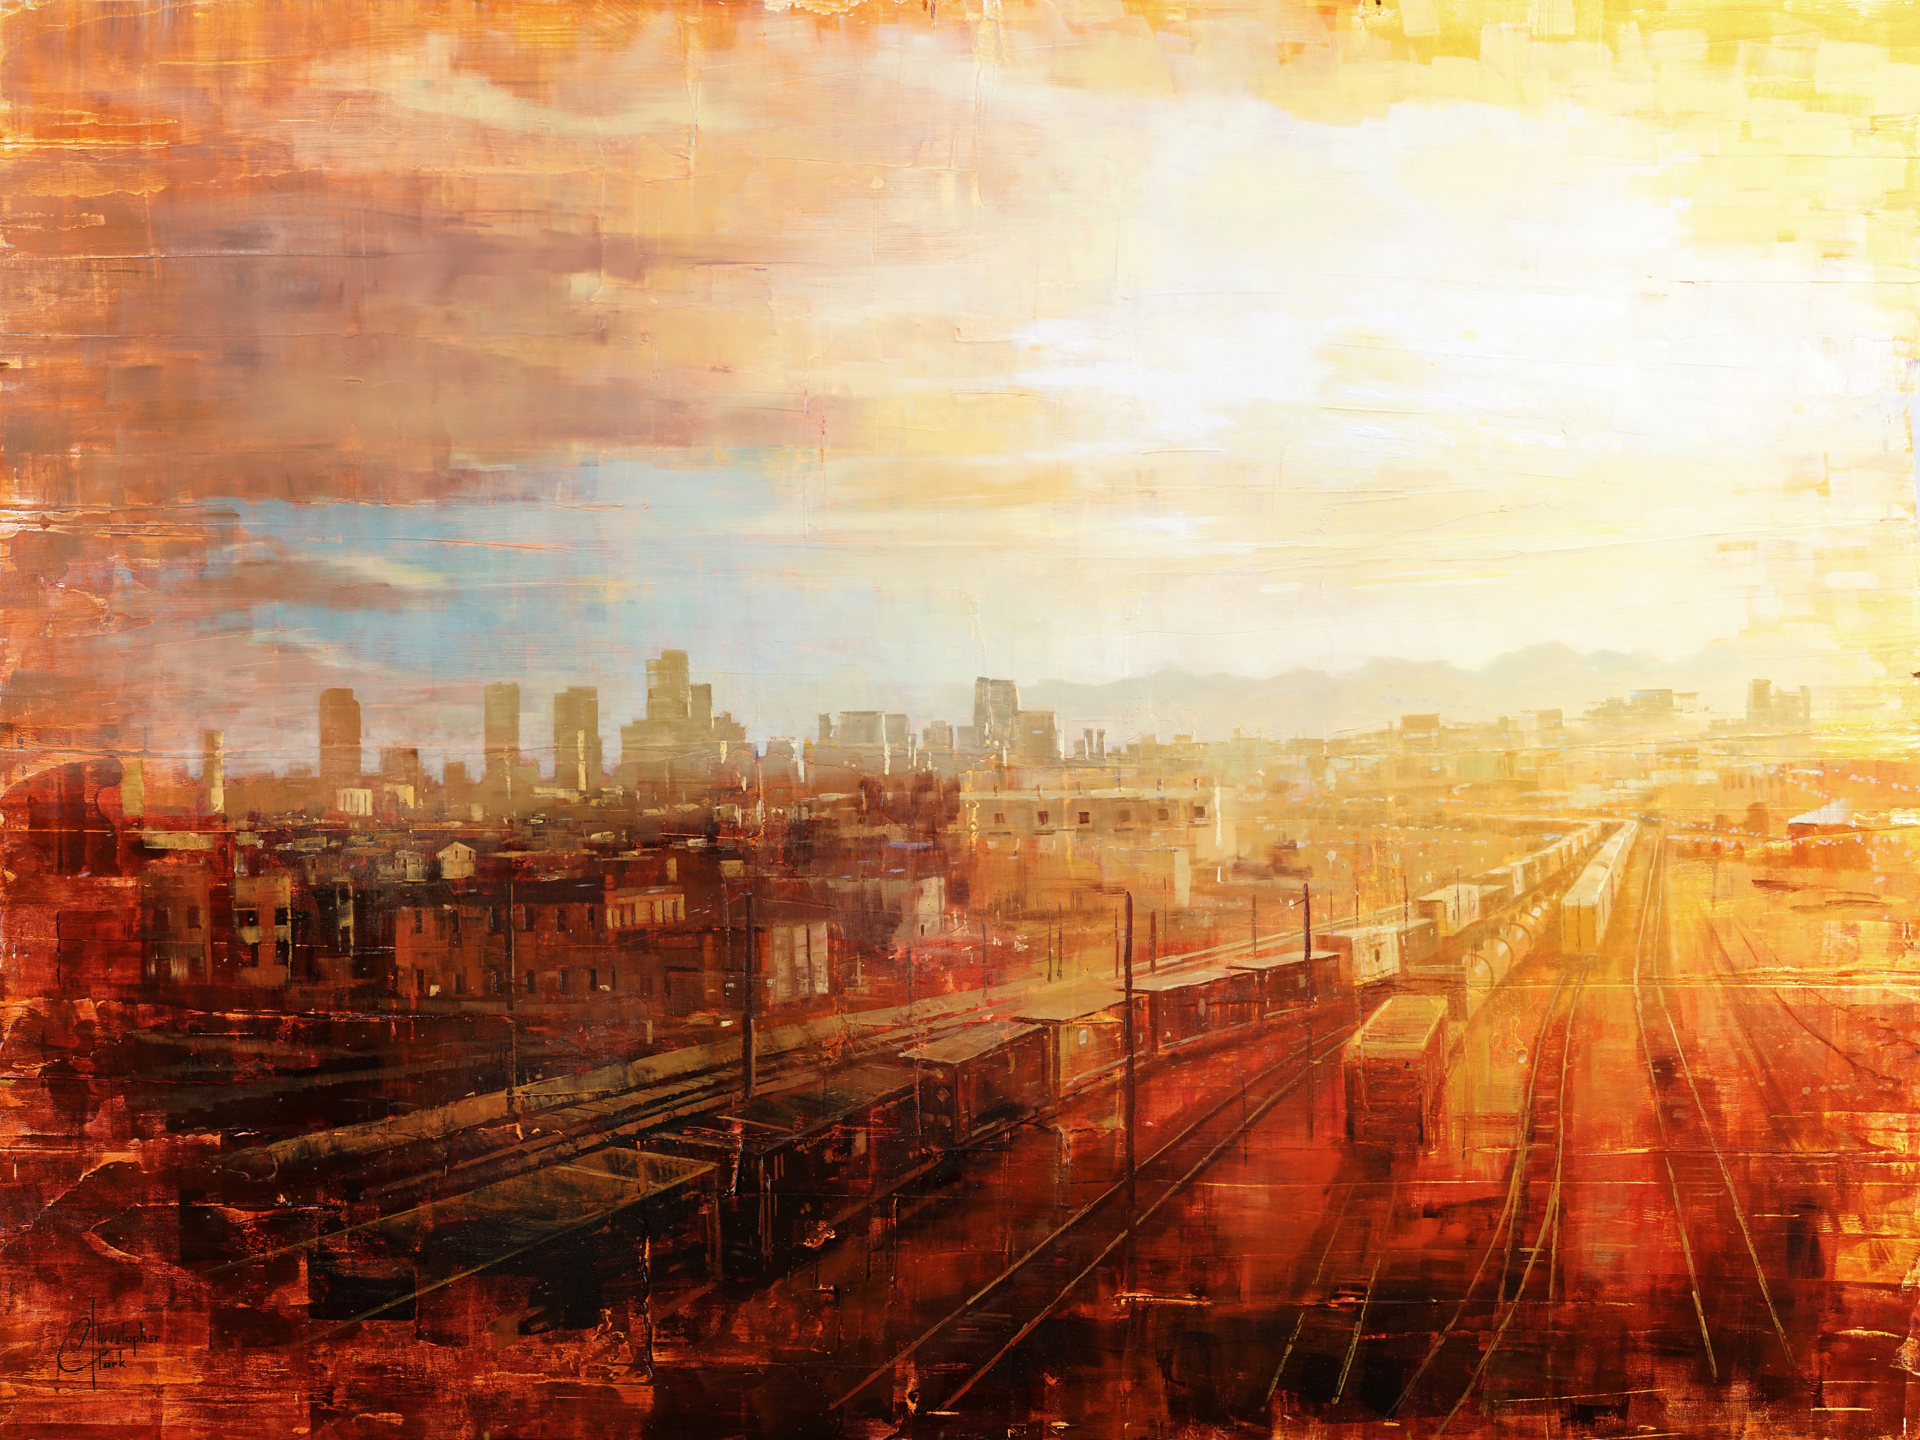 Denver - Afternoon Over the Tracks by Christopher Clark